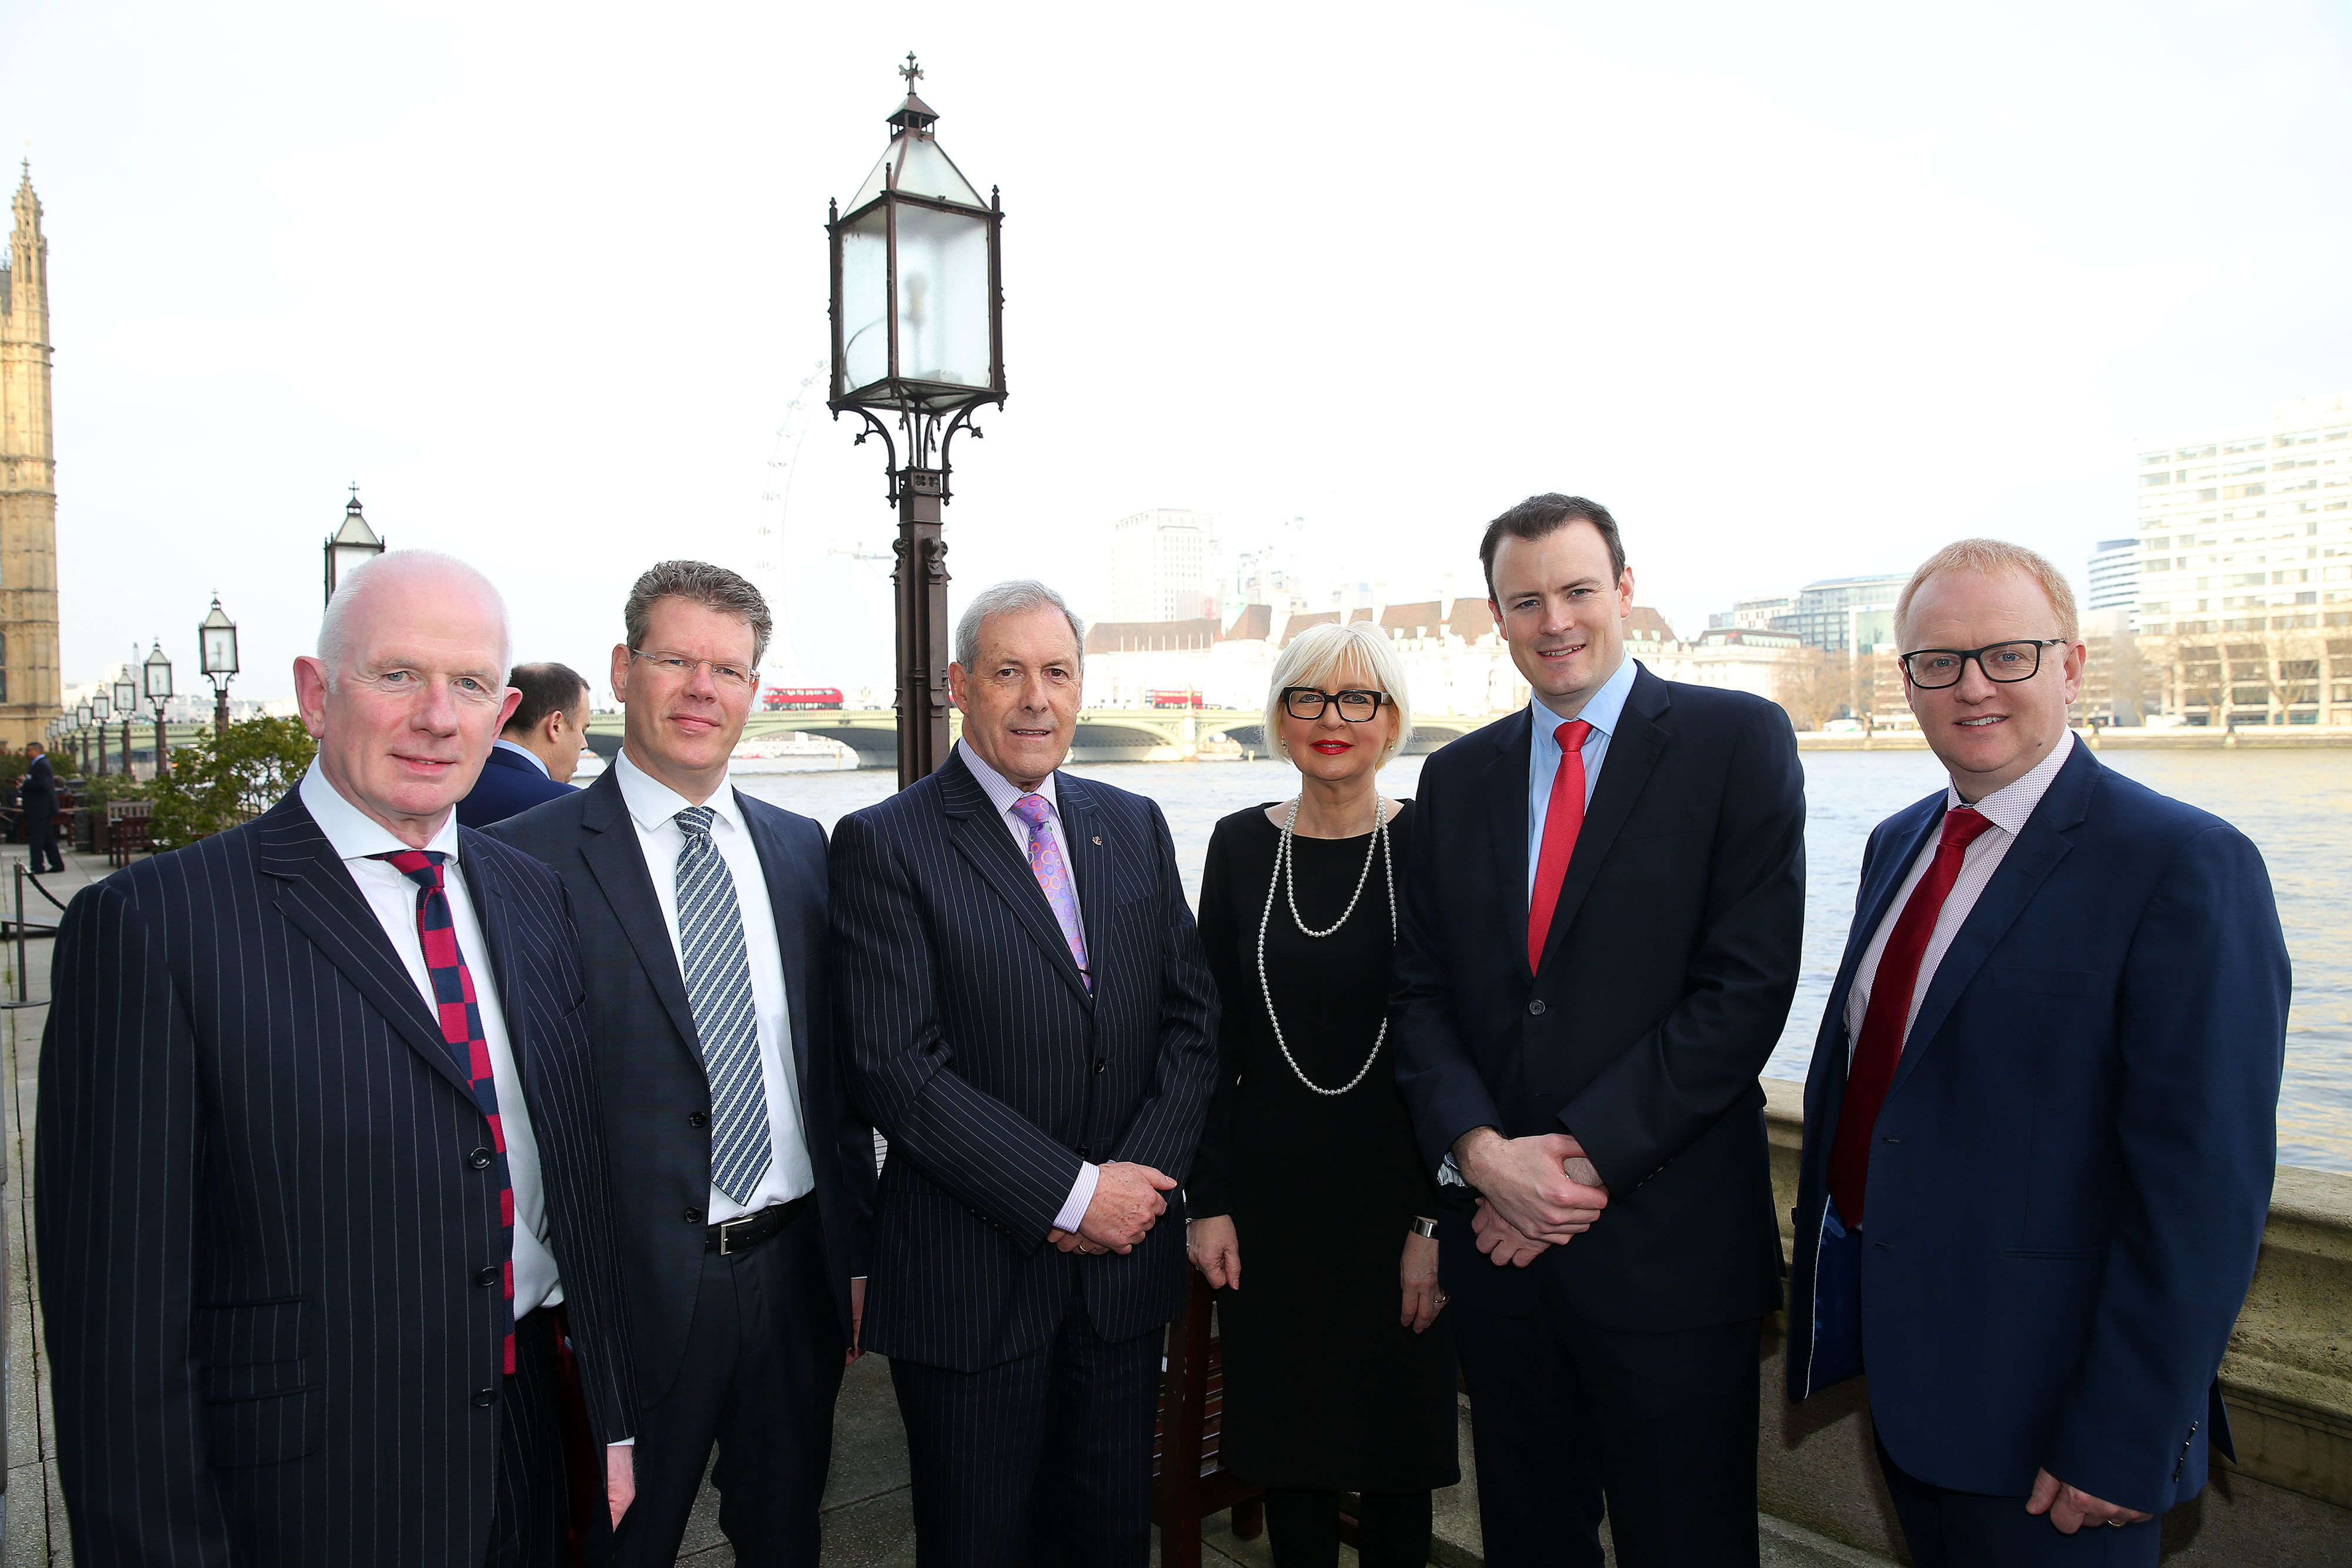 Andrew Ingredients and guests attending the Lisburn Castlereagh at Westminster event